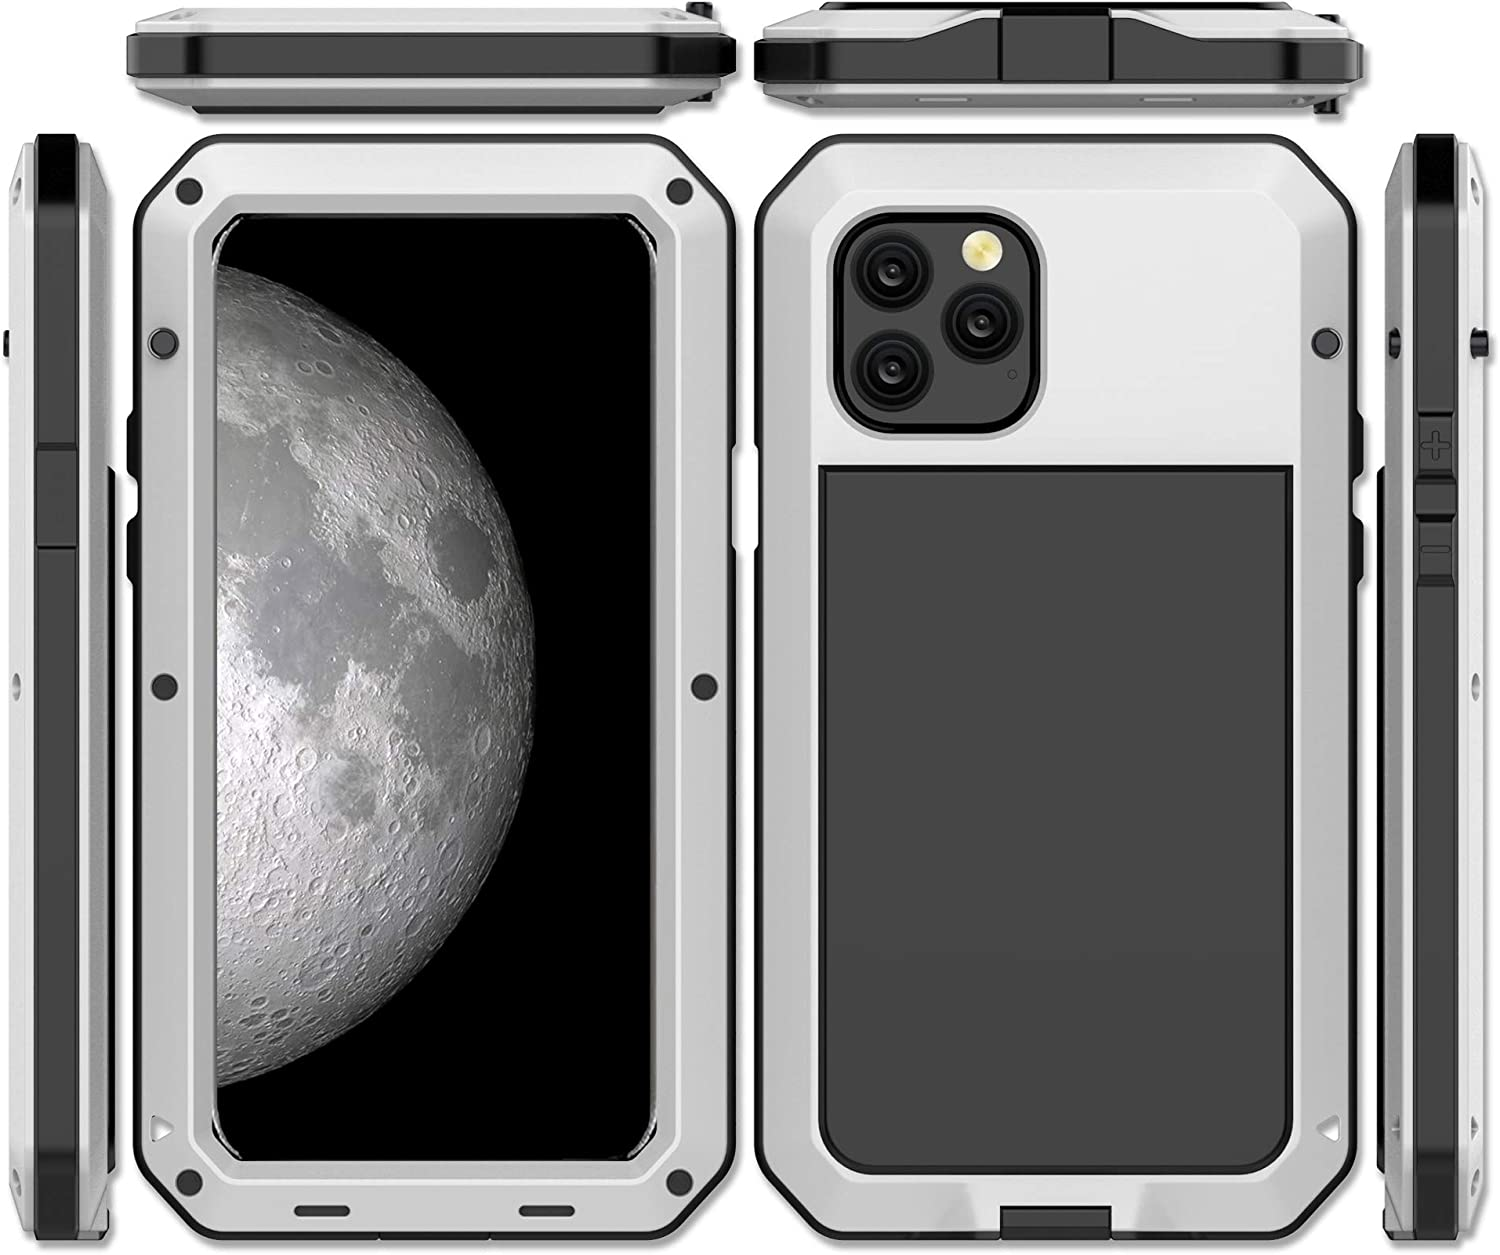 iPhone 11 Case, CarterLily Full Body Shockproof Dustproof Waterproof Aluminum Alloy Metal Gorilla Glass Cover Case for Apple iPhone 11 6.1 inch (White)